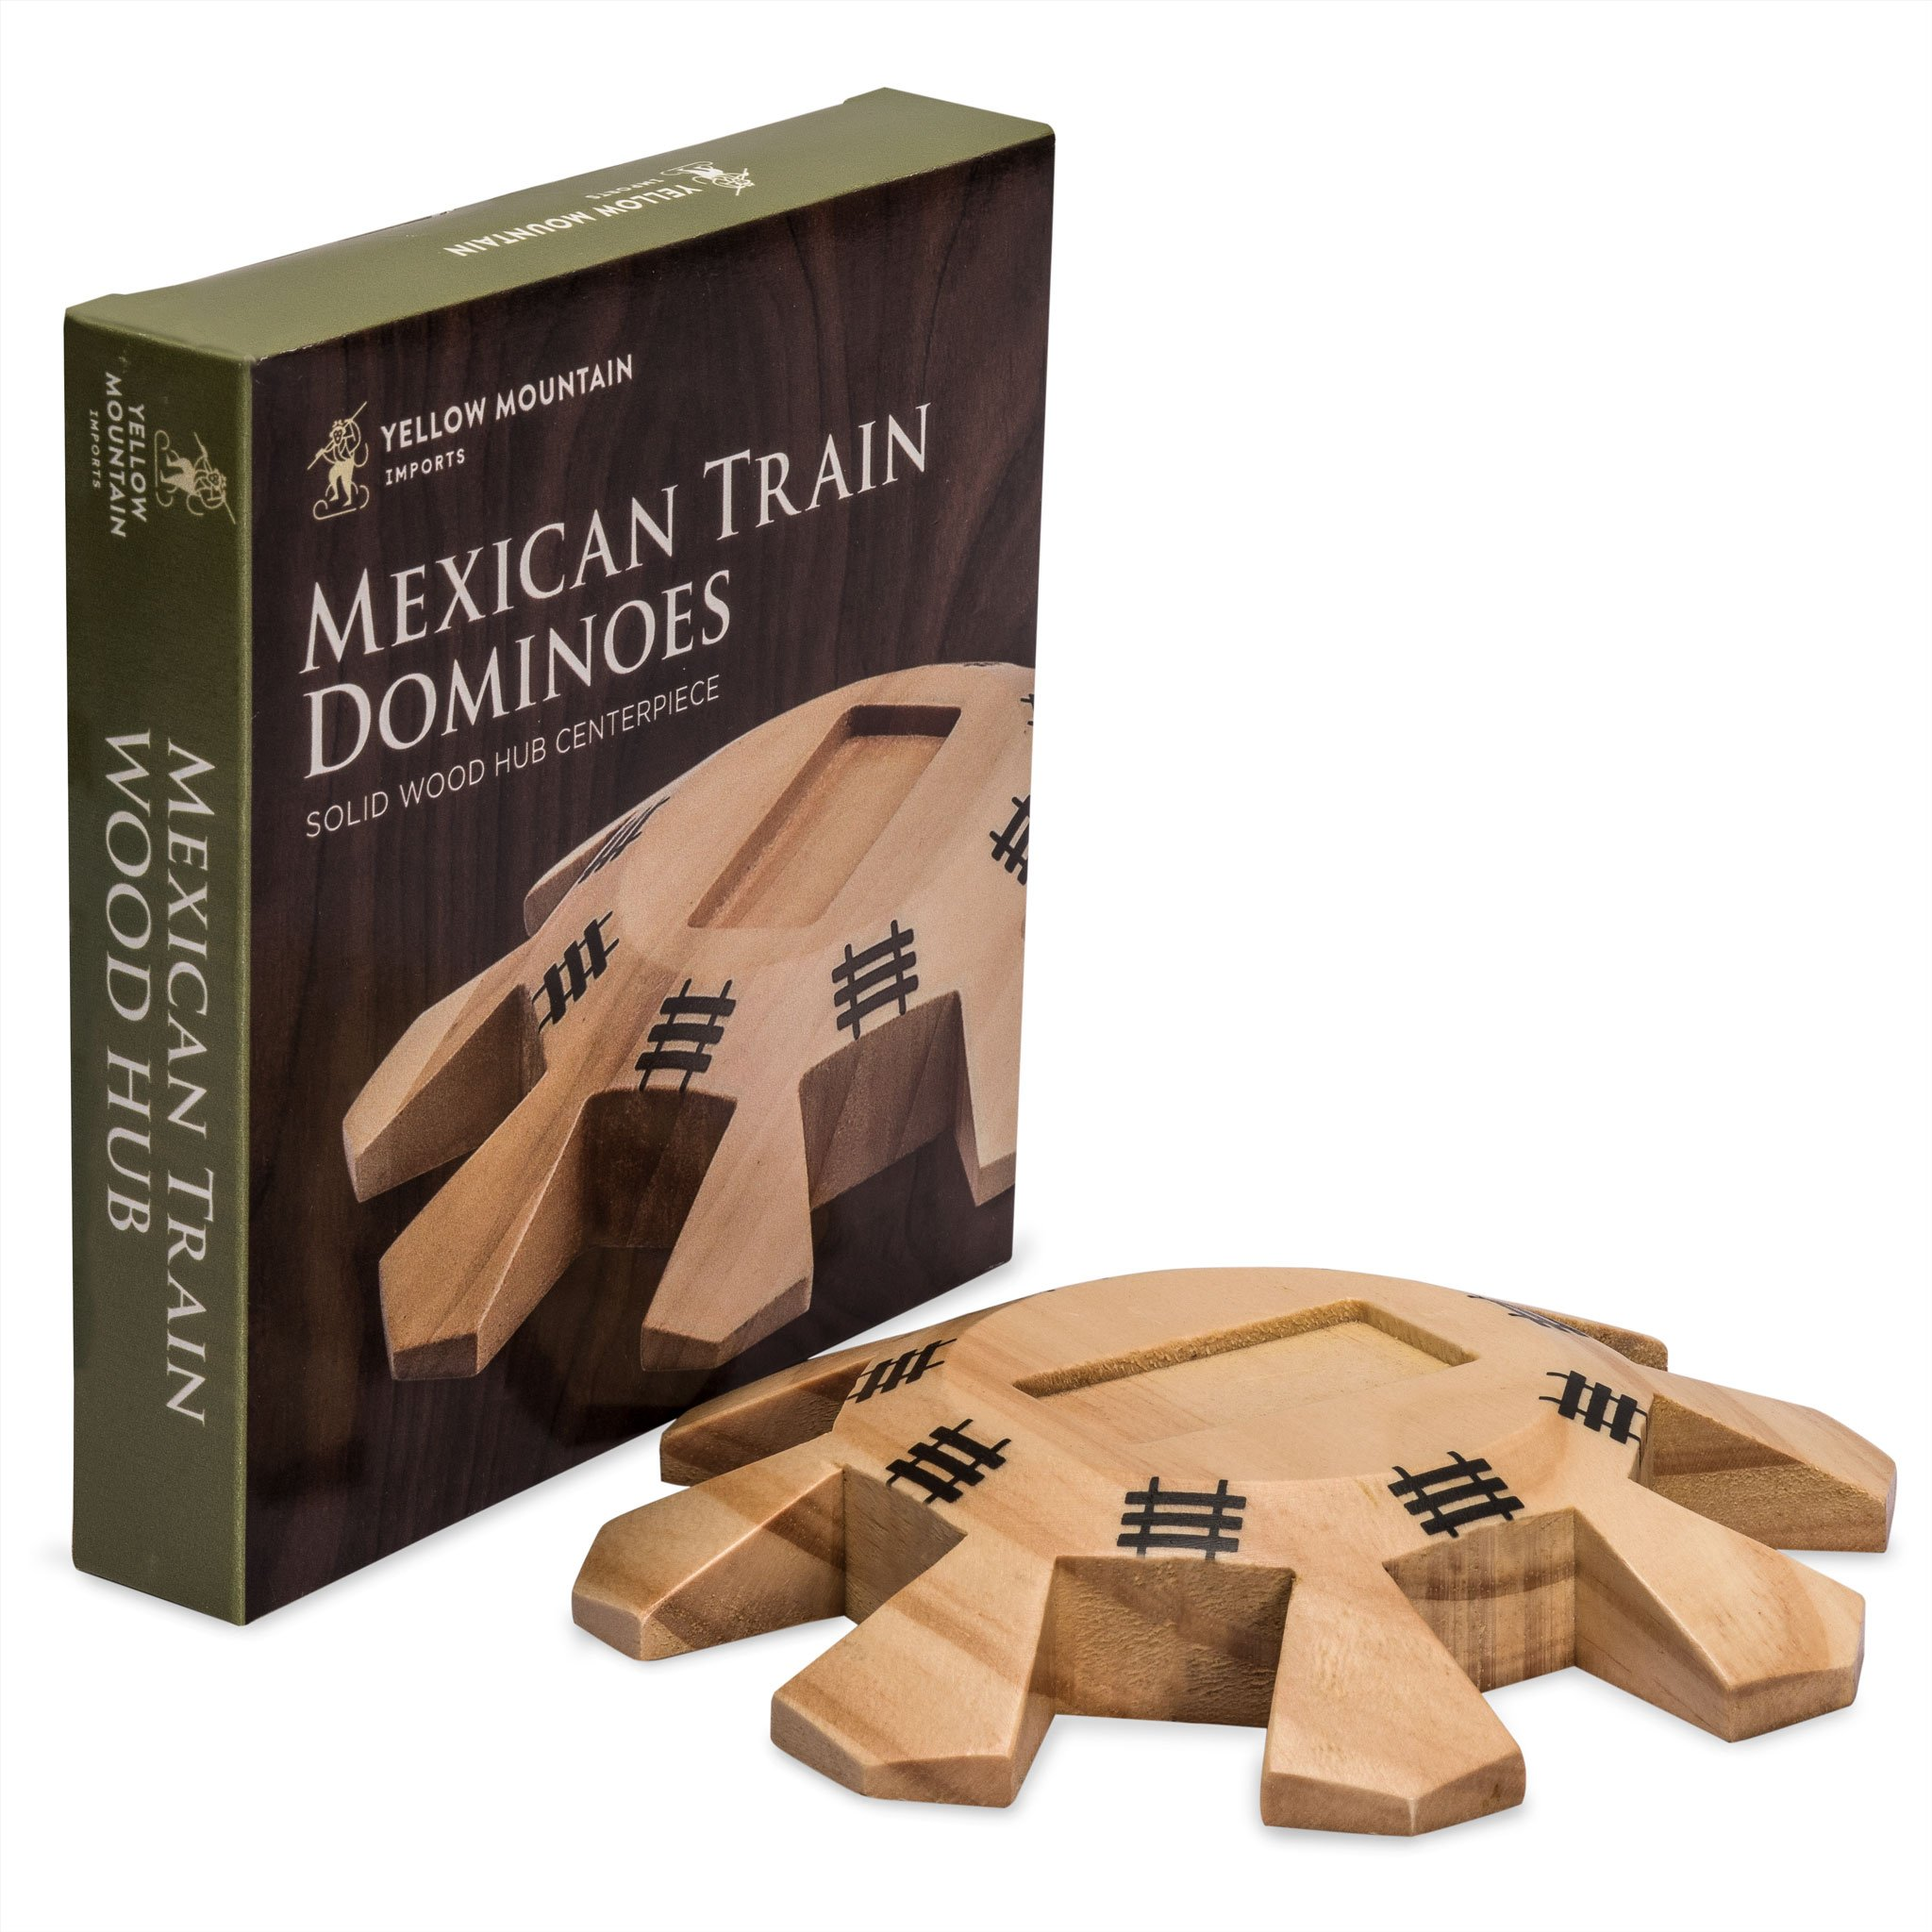 Yellow Mountain Imports Wooden Hub Centerpiece for Mexican Train Dominoes - Crafted from Solid Wood by Yellow Mountain Imports